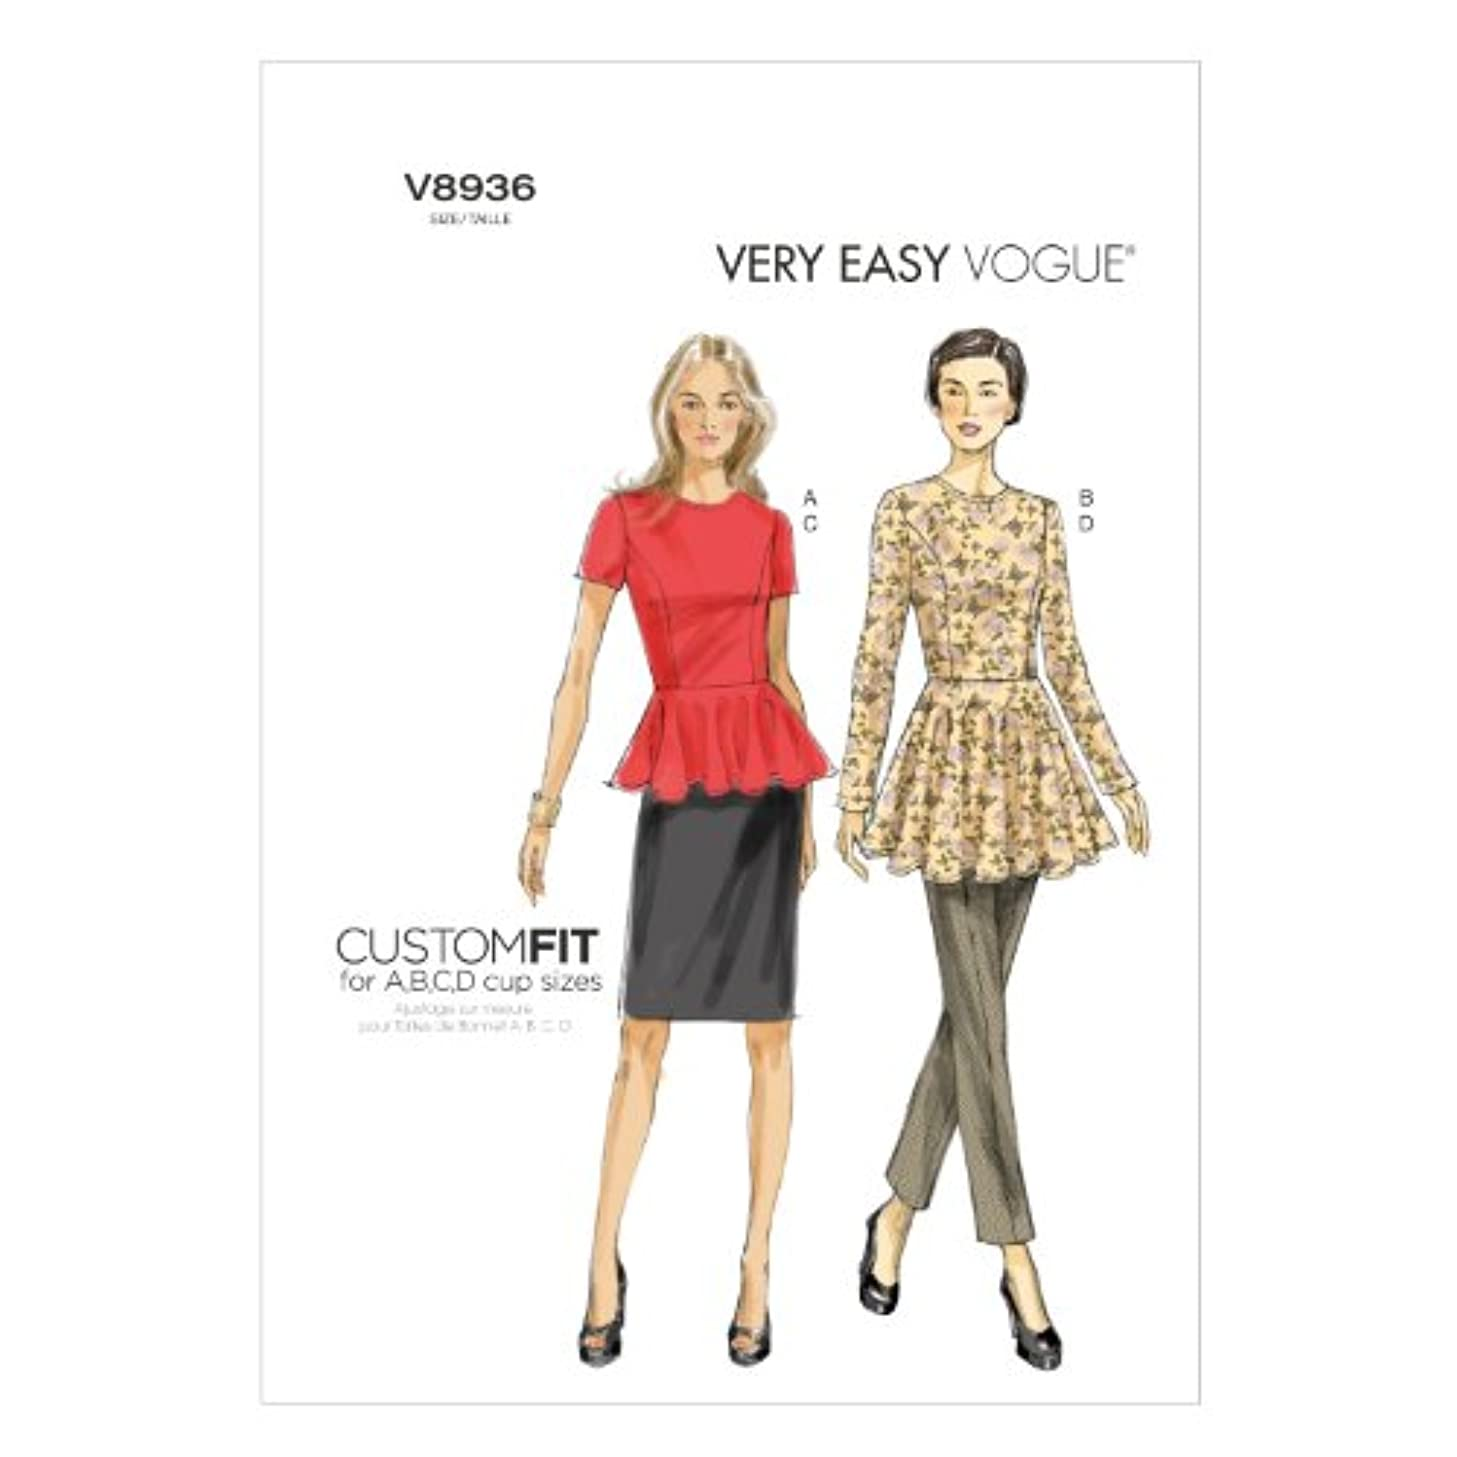 Vogue Patterns V8936 Misses' Tunic, Skirt and Pants Sewing Templates, Size A5 (6-8-10-12-14)